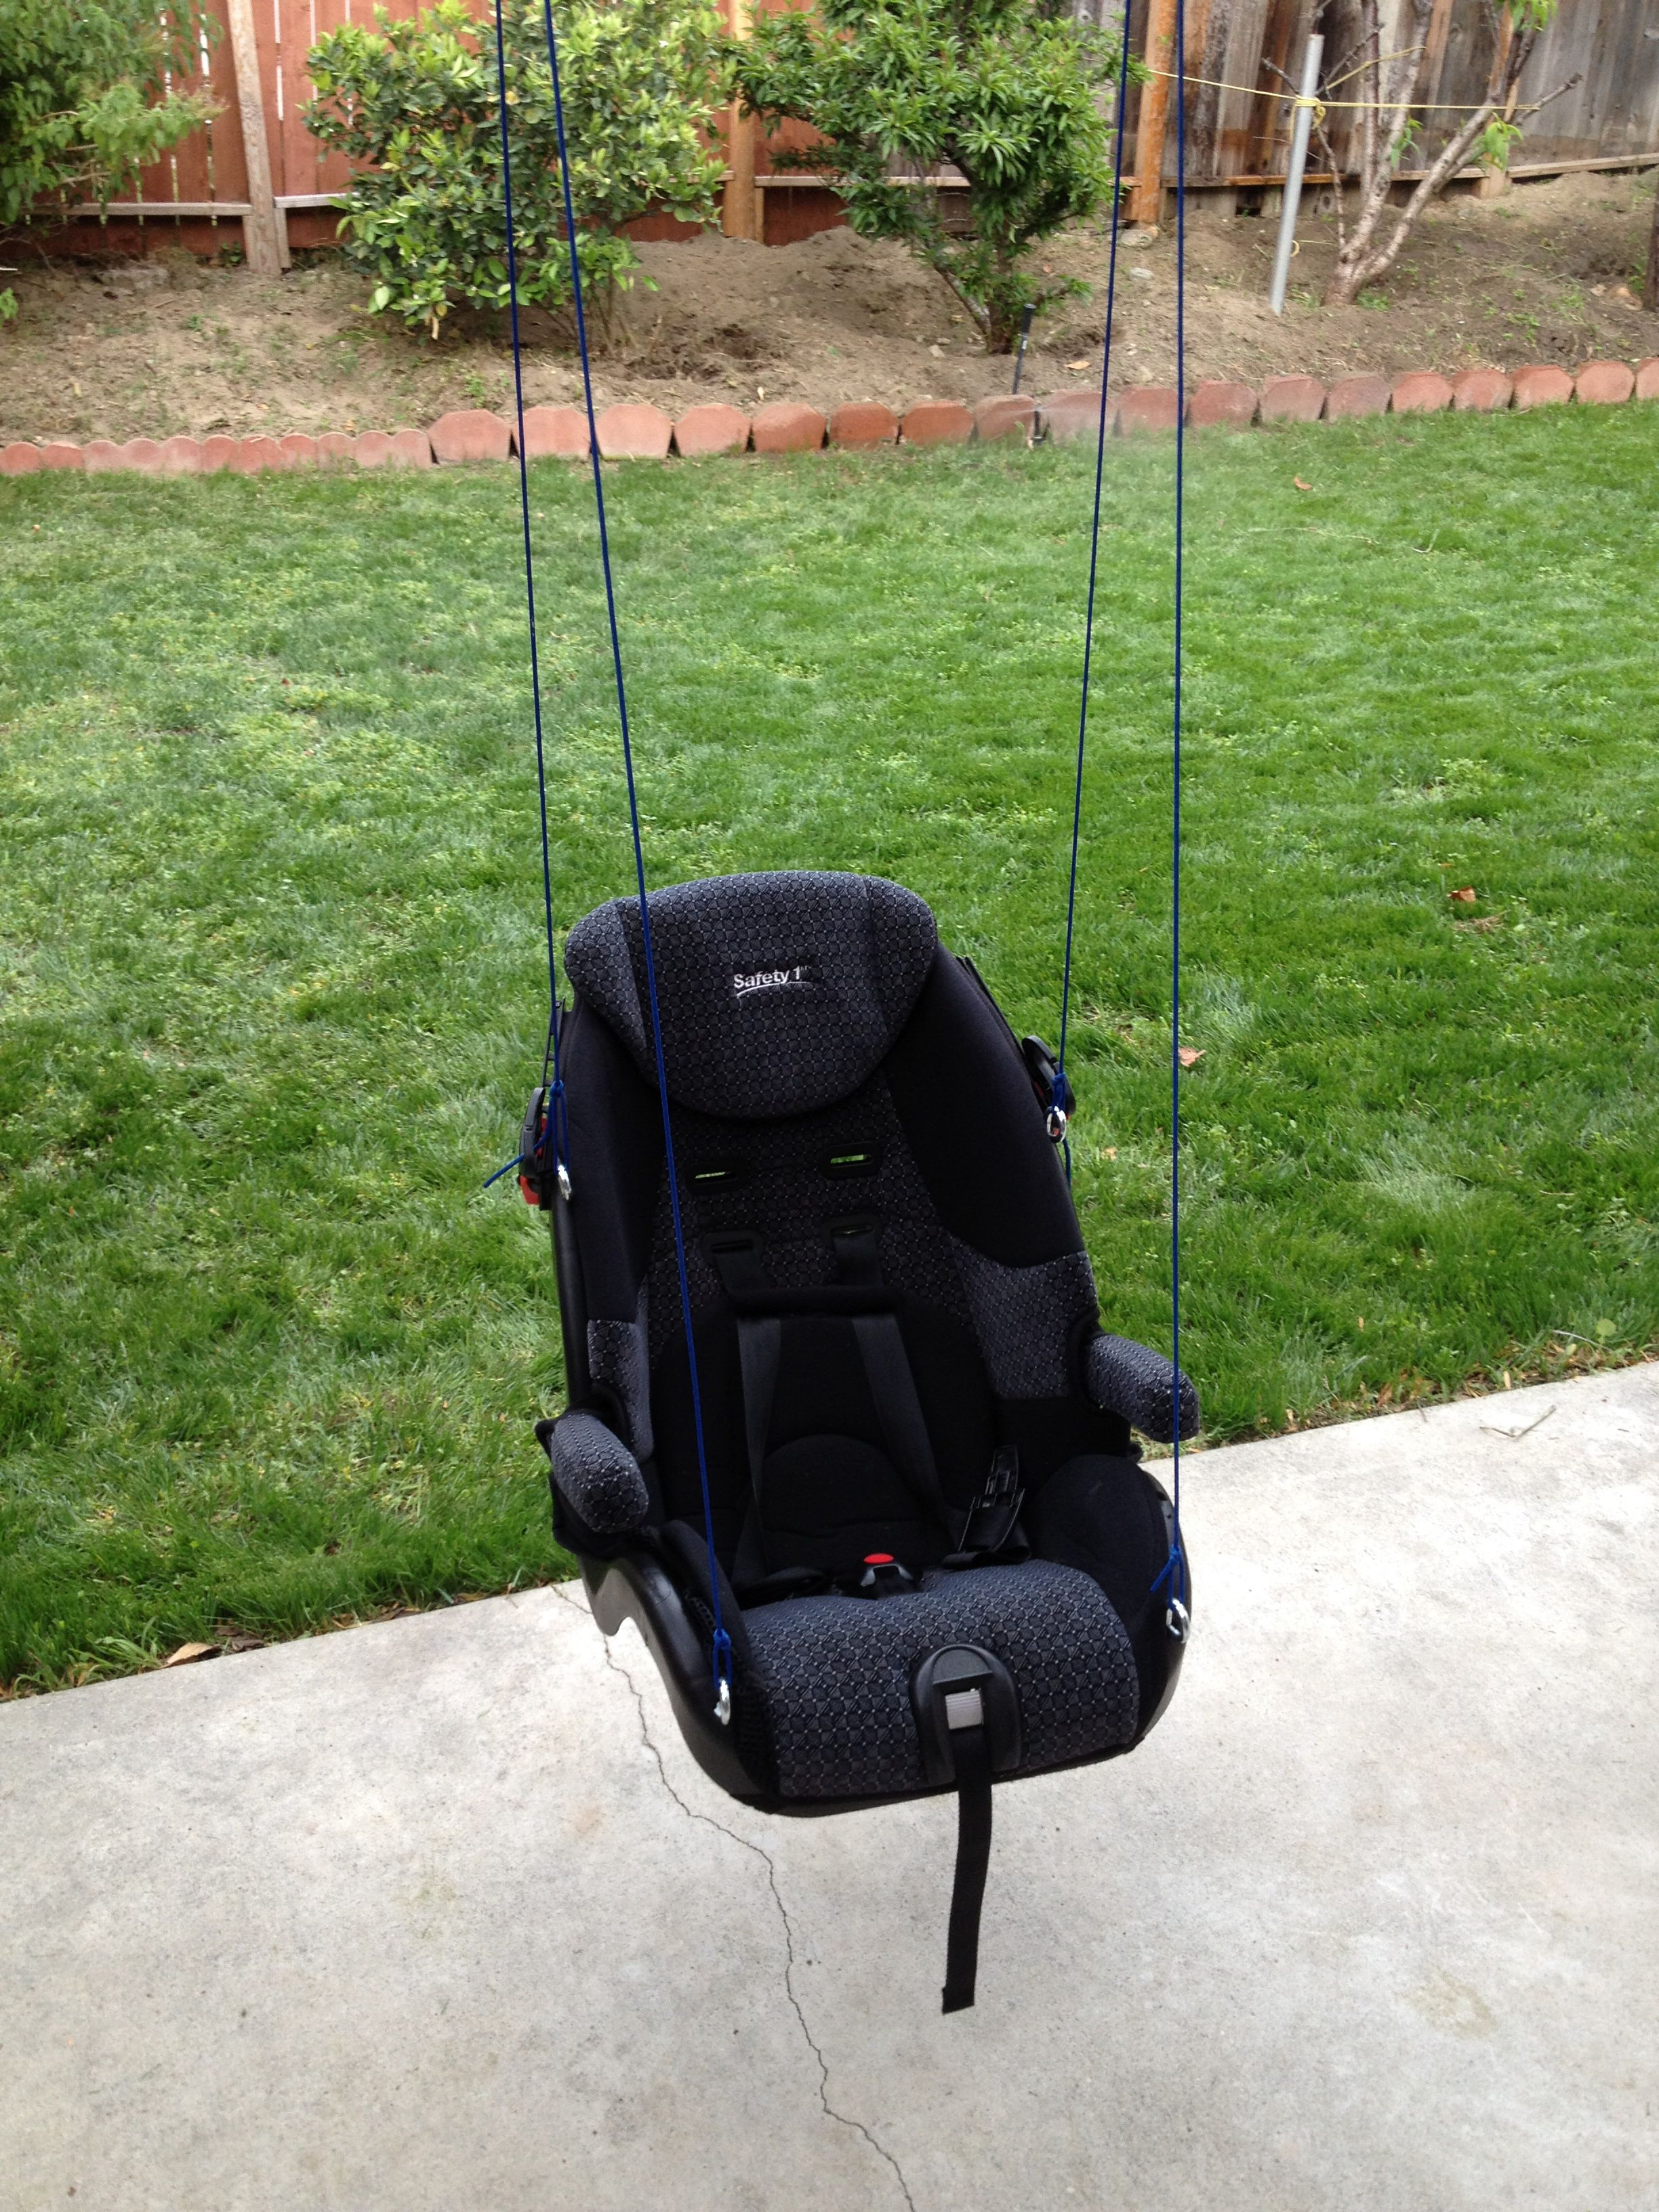 Diy Car Seat Upcycle Baby Swing Outdoor Awesome Idea With 5 Point Harness